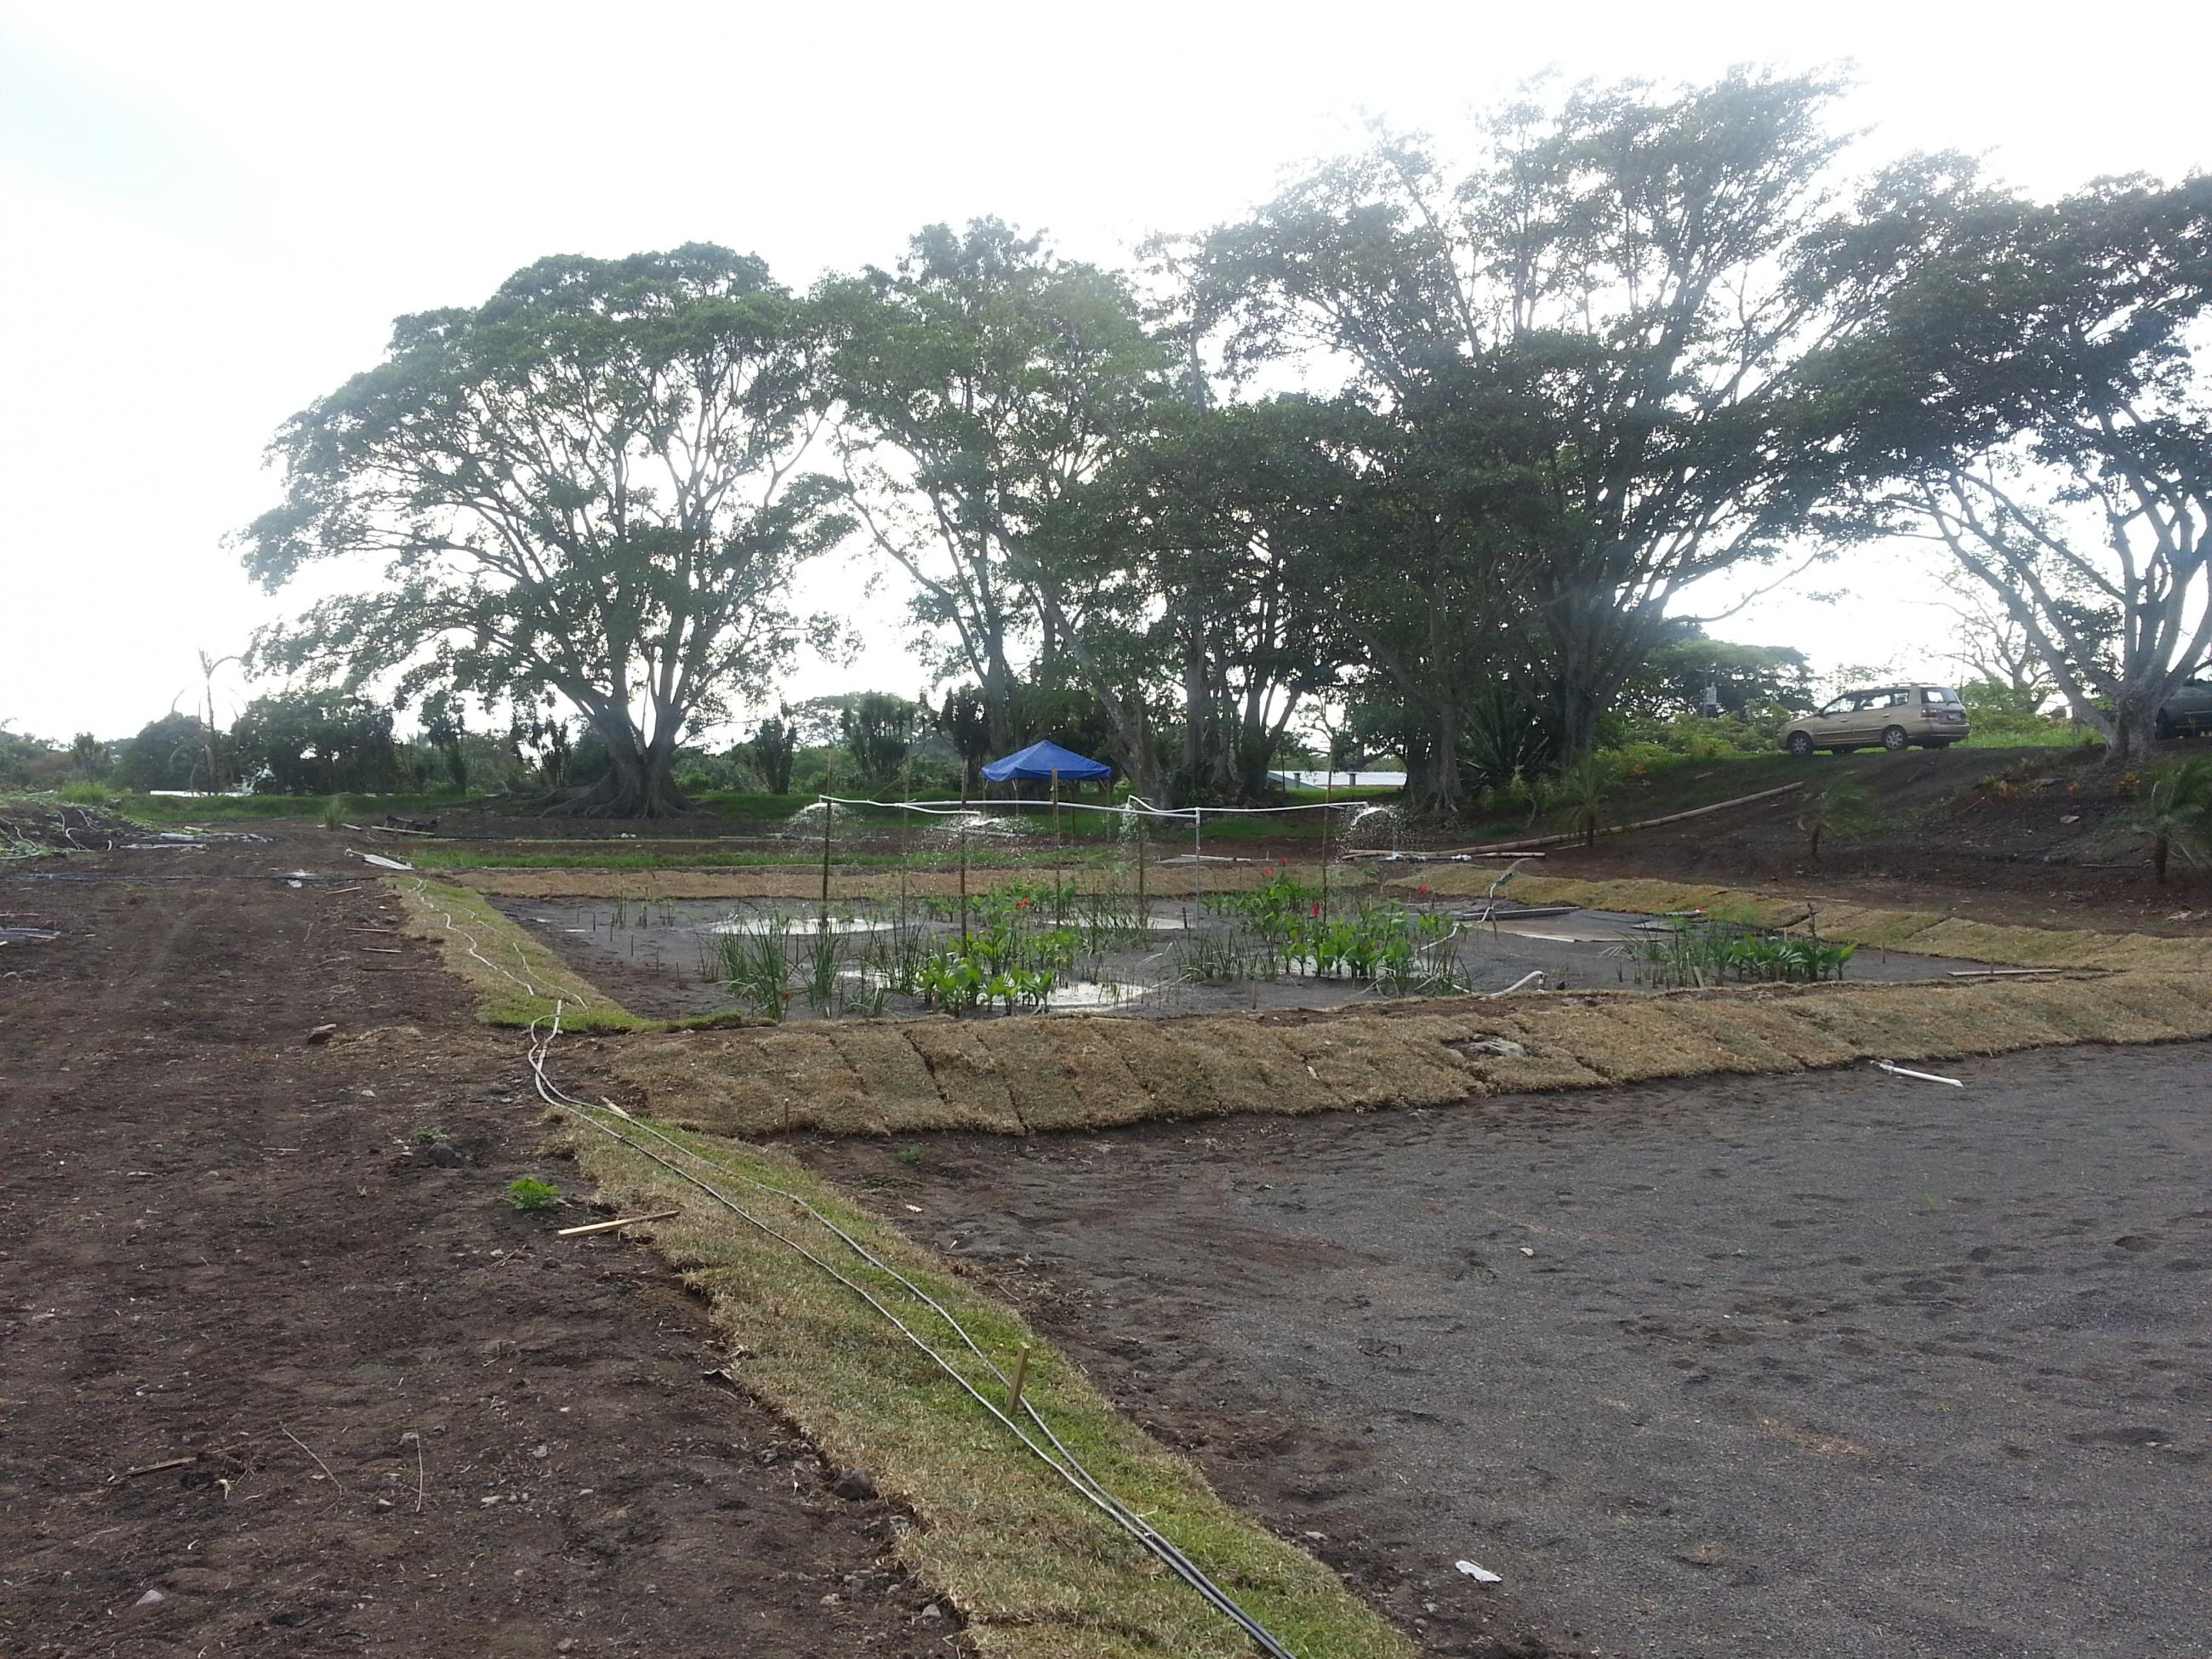 Photo of a new wetland waste treatment system set up, bare earth and little vegetation in the center